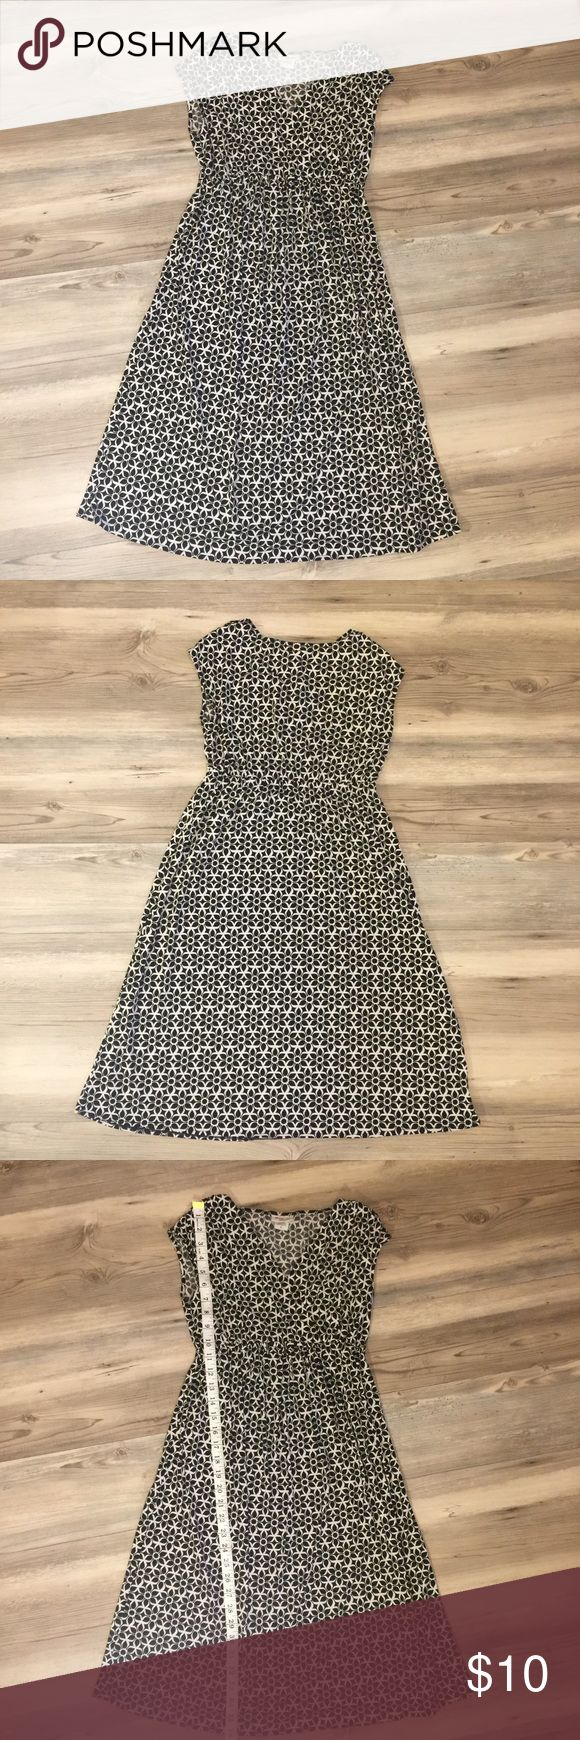 Maternity B & W print dress Mimi maternity black and white print dress with elastic in the middle!  Size small Mimi Maternity Dresses